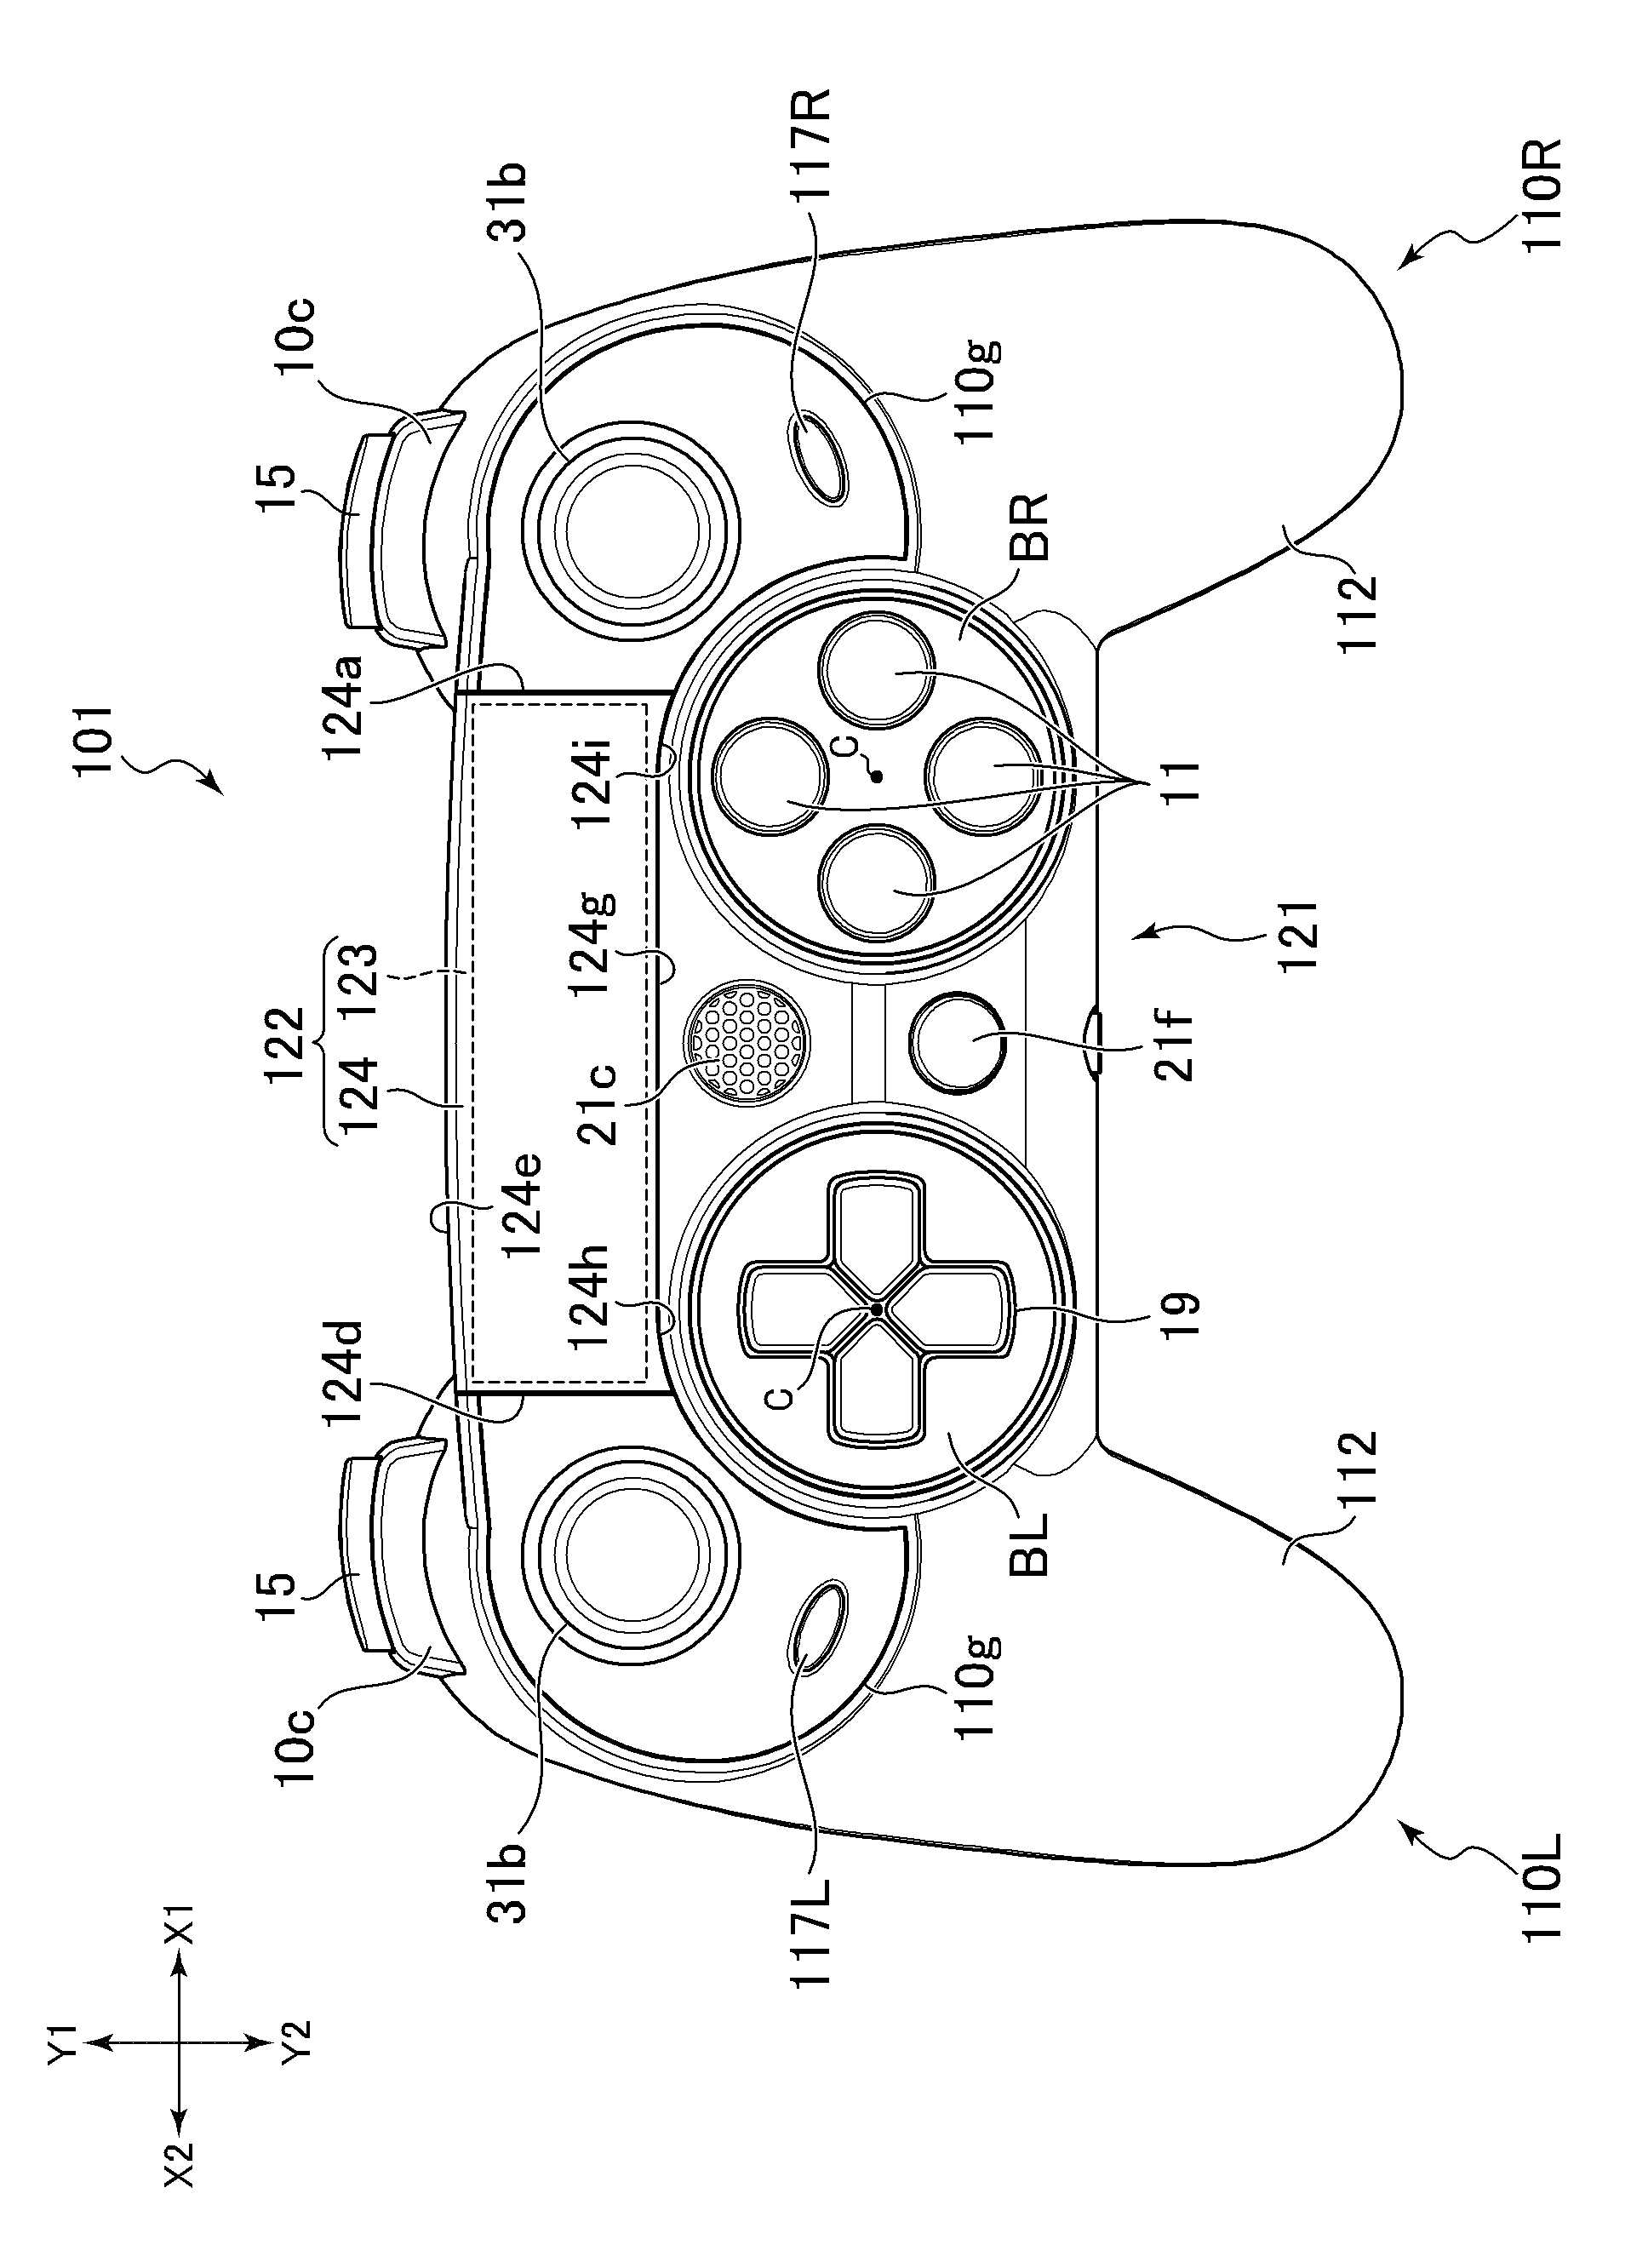 Game N Motion Playstation 4 Controller Patent Shows The